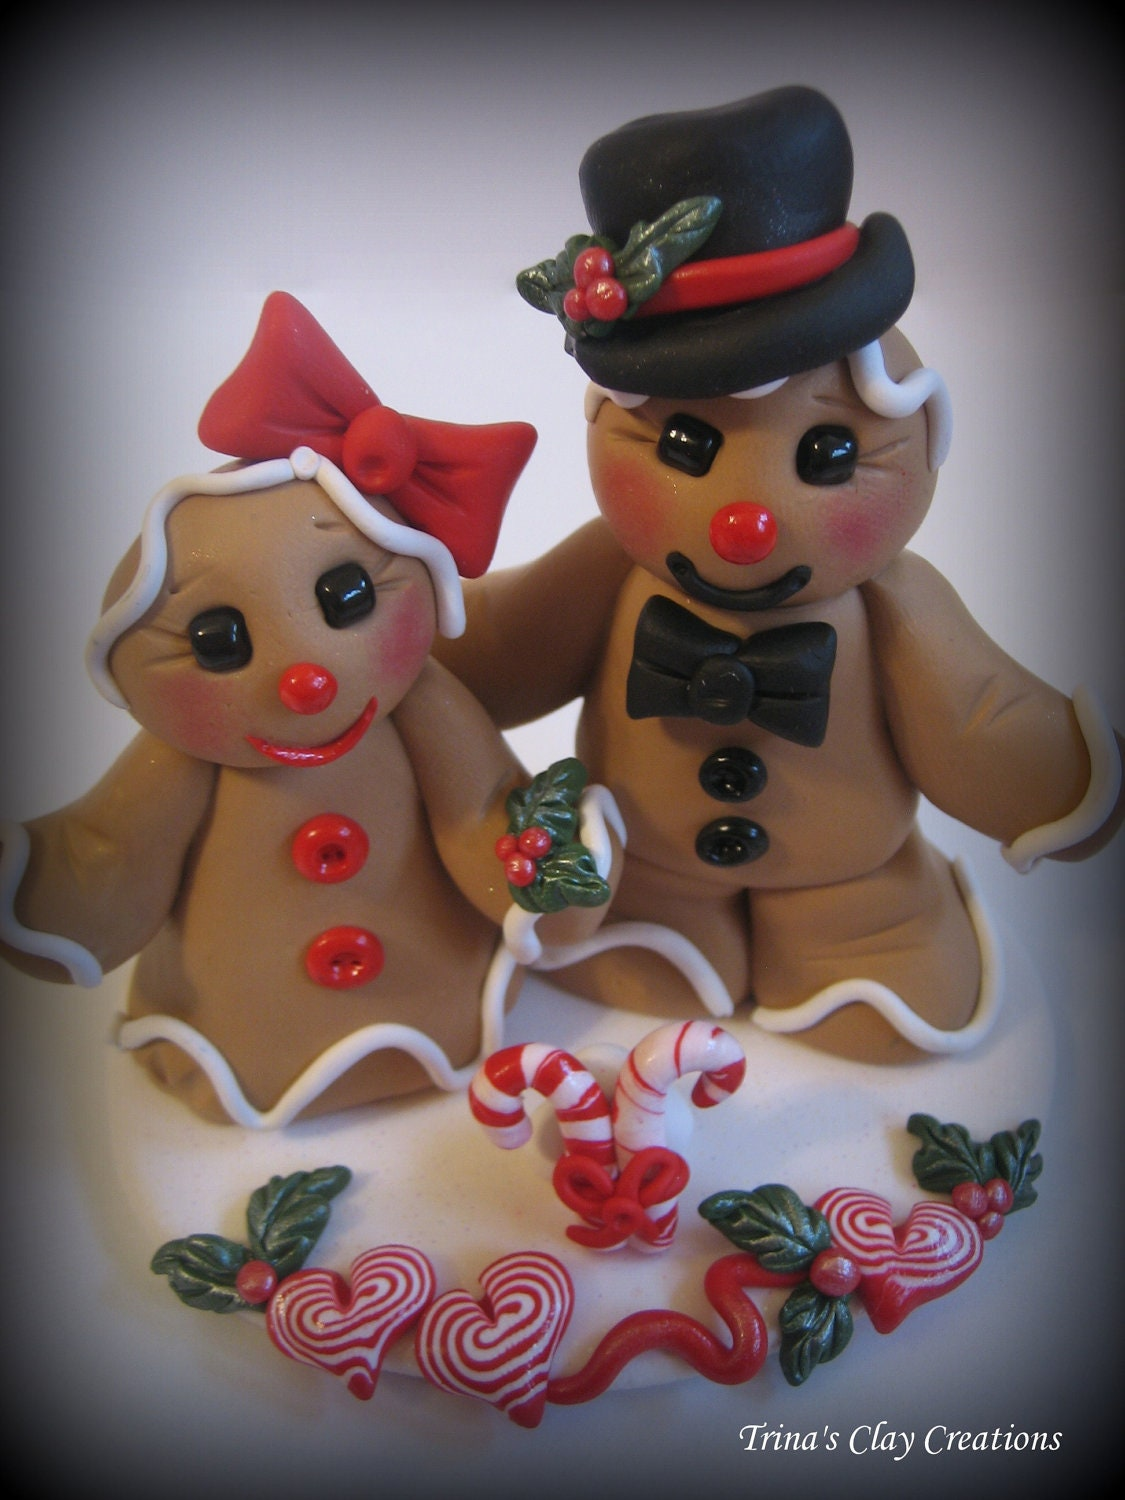 Wedding Cake Topper, Custom Cake Topper, Gingerbread Man, Gingerbread Cake Topper, Holiday Cake Topper